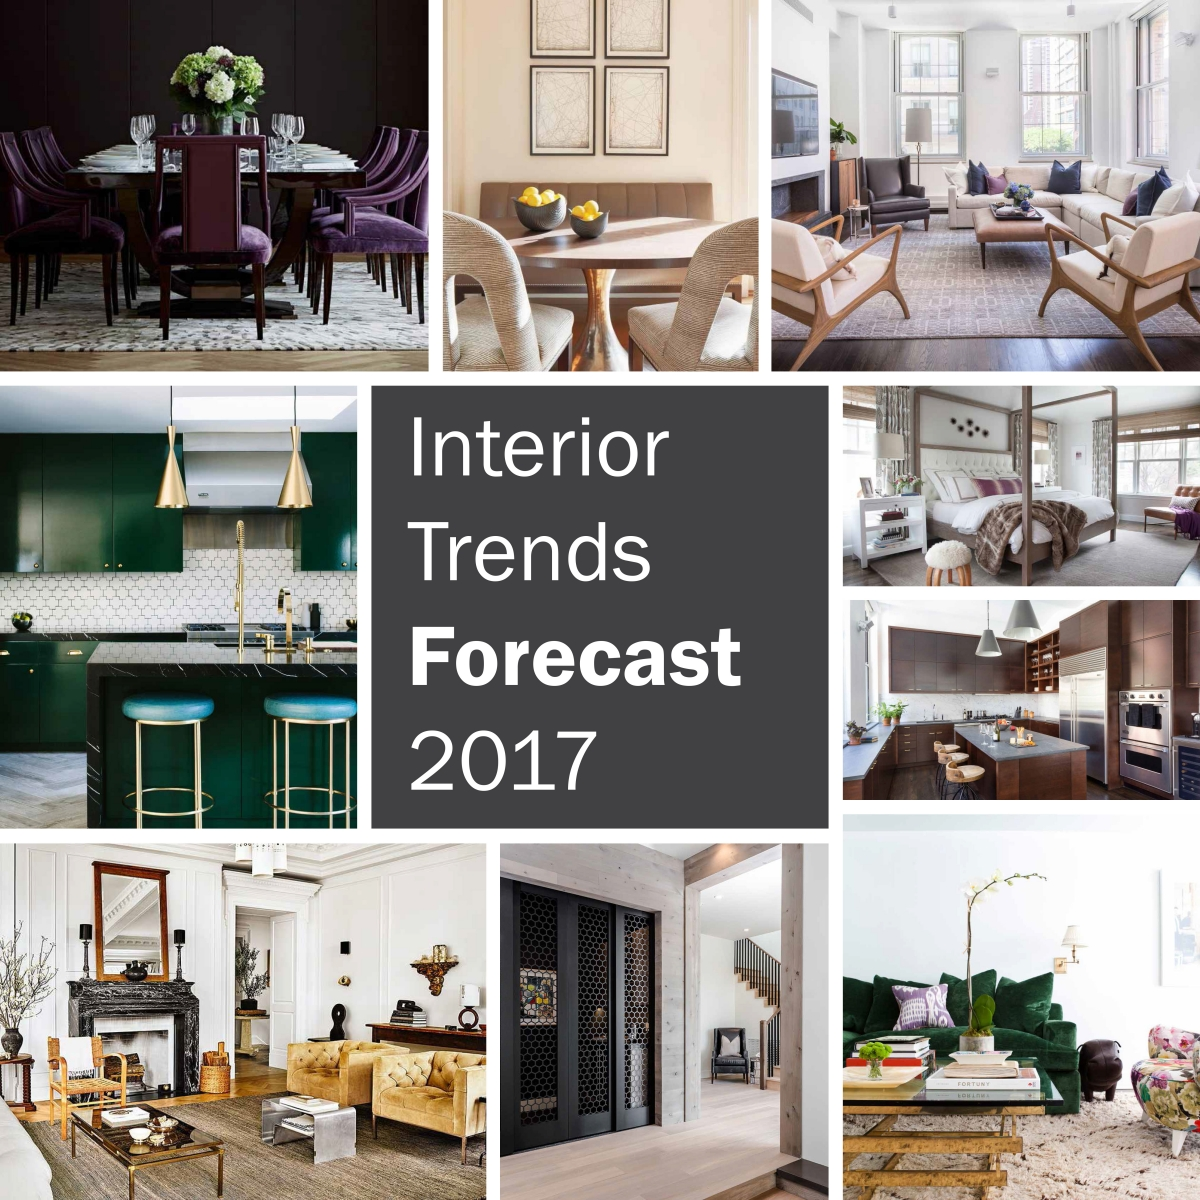 Chestnut woods lda architecture and interiors - Interior Trends Forecast For 2017